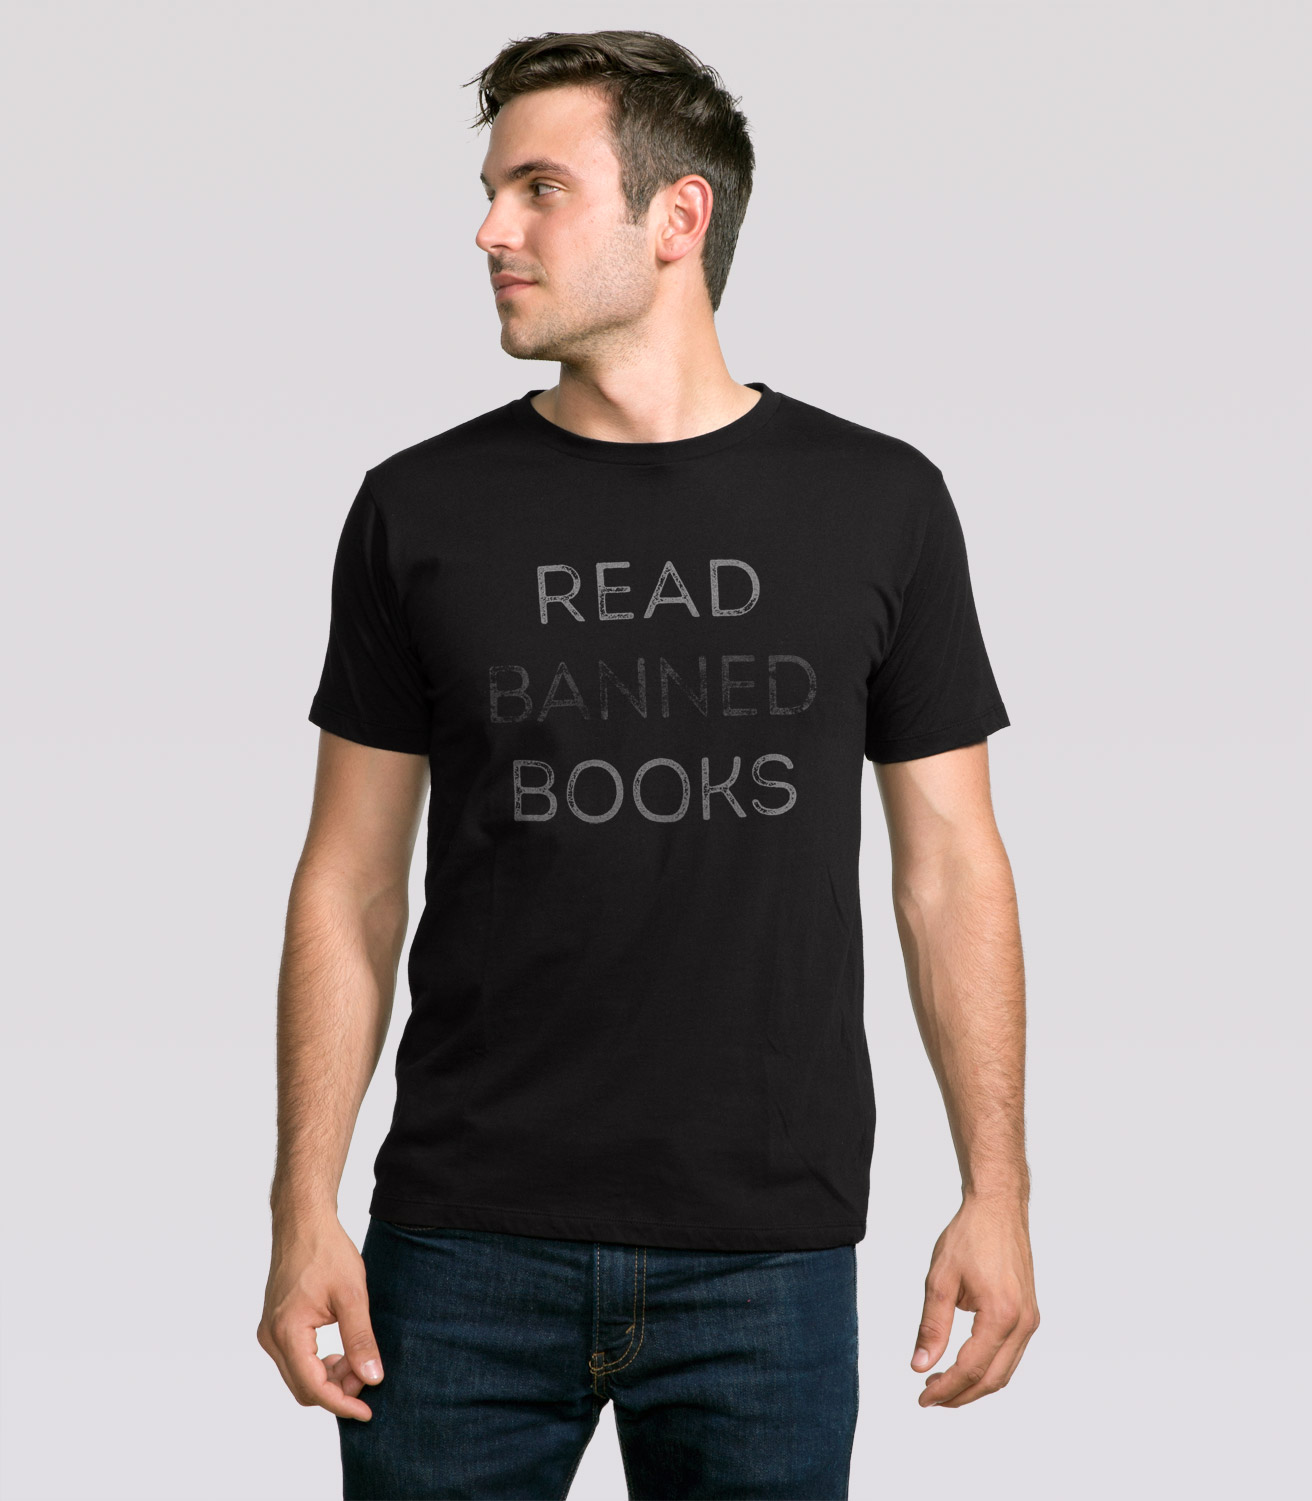 Read banned books men 39 s funny t shirt headline shirts for Silly shirts for men